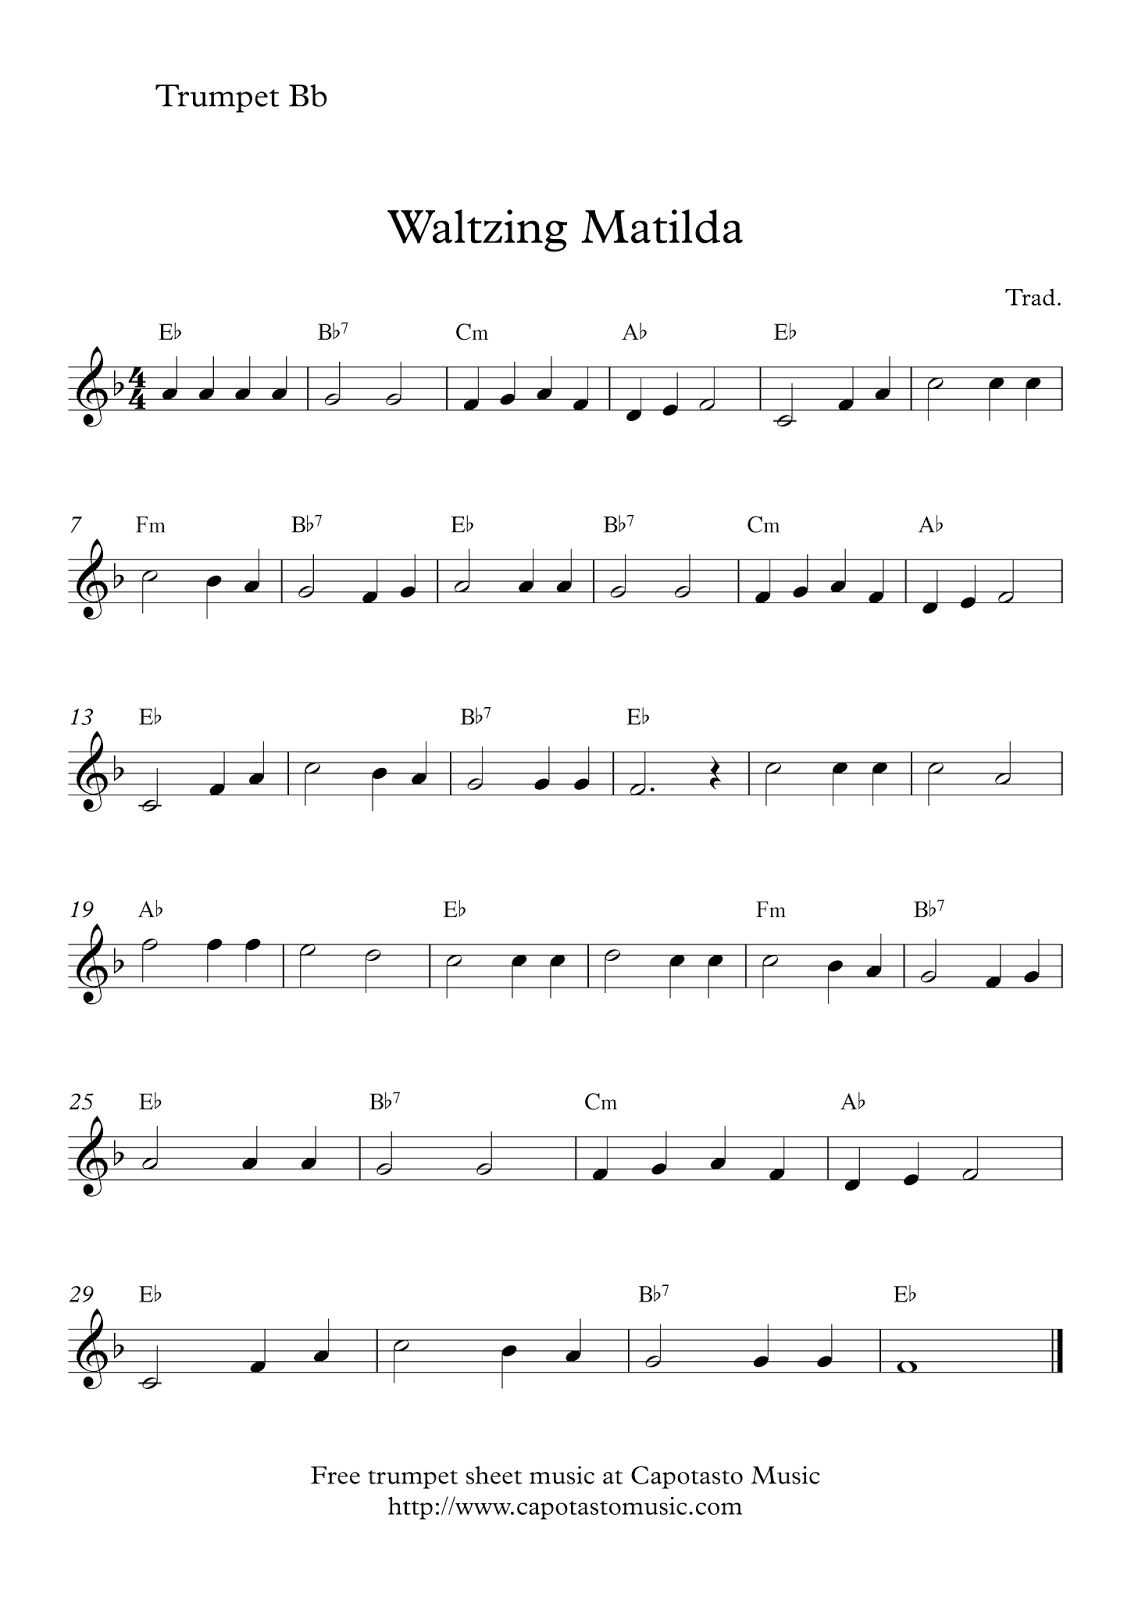 Free Trumpet Sheet Music | Waltzing Matilda - Free Printable Sheet Music For Trumpet